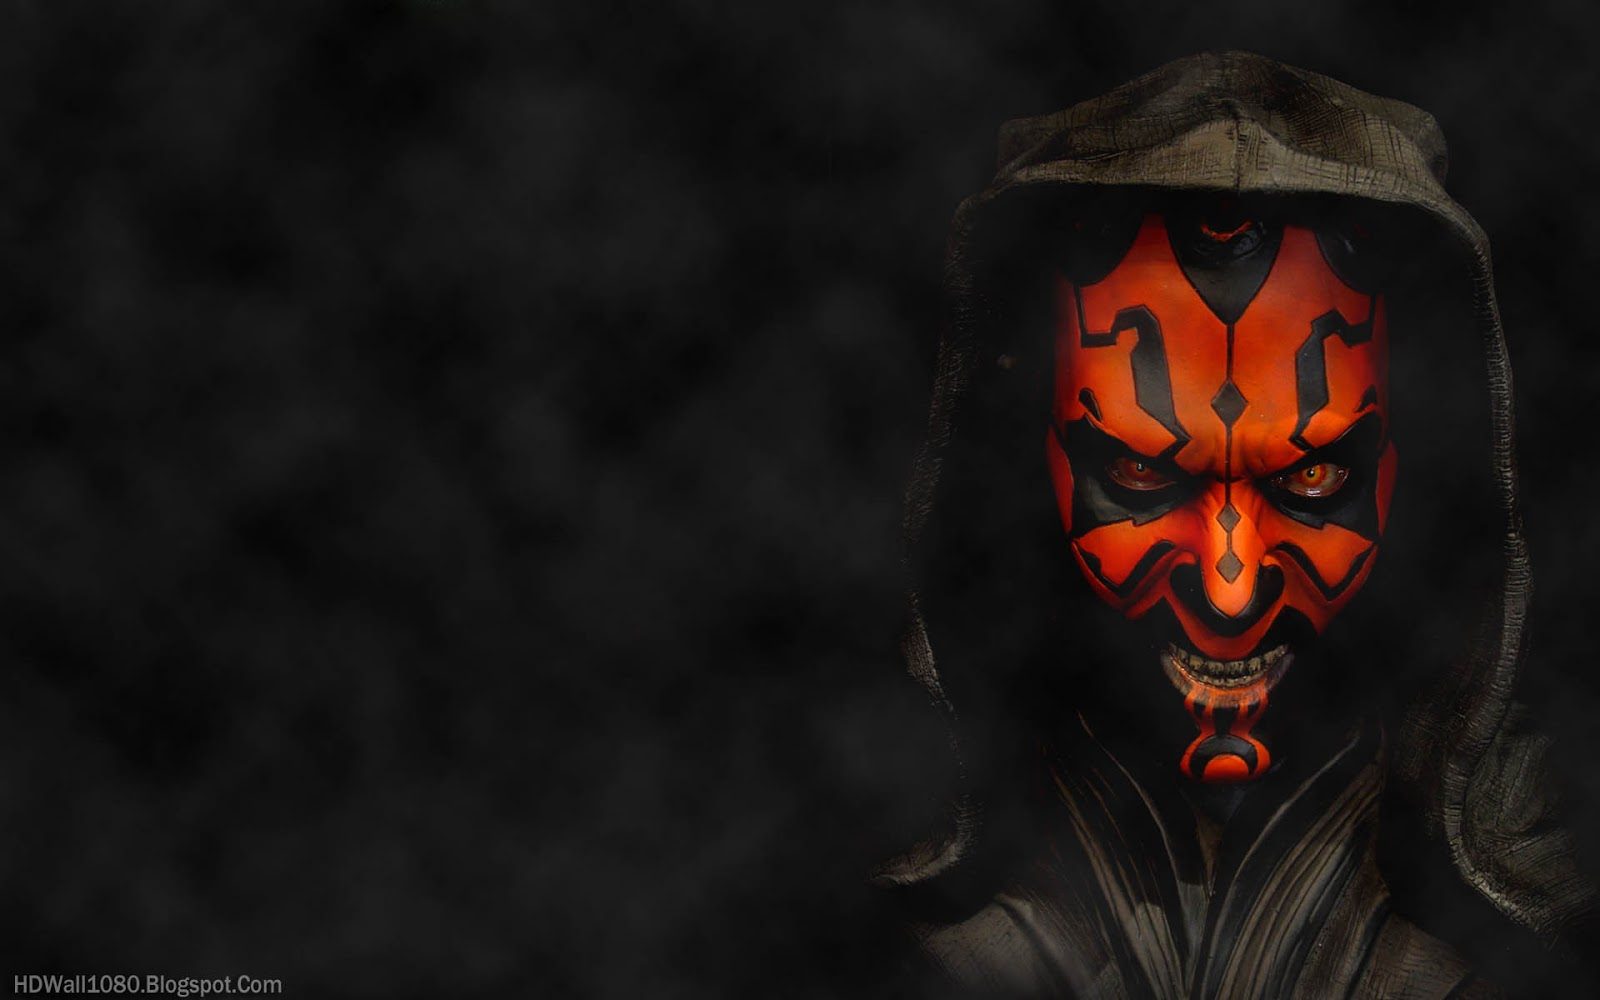 Hd Pc Desktop Wallpapers Lord Of The Sith Star Wars Wallpaper